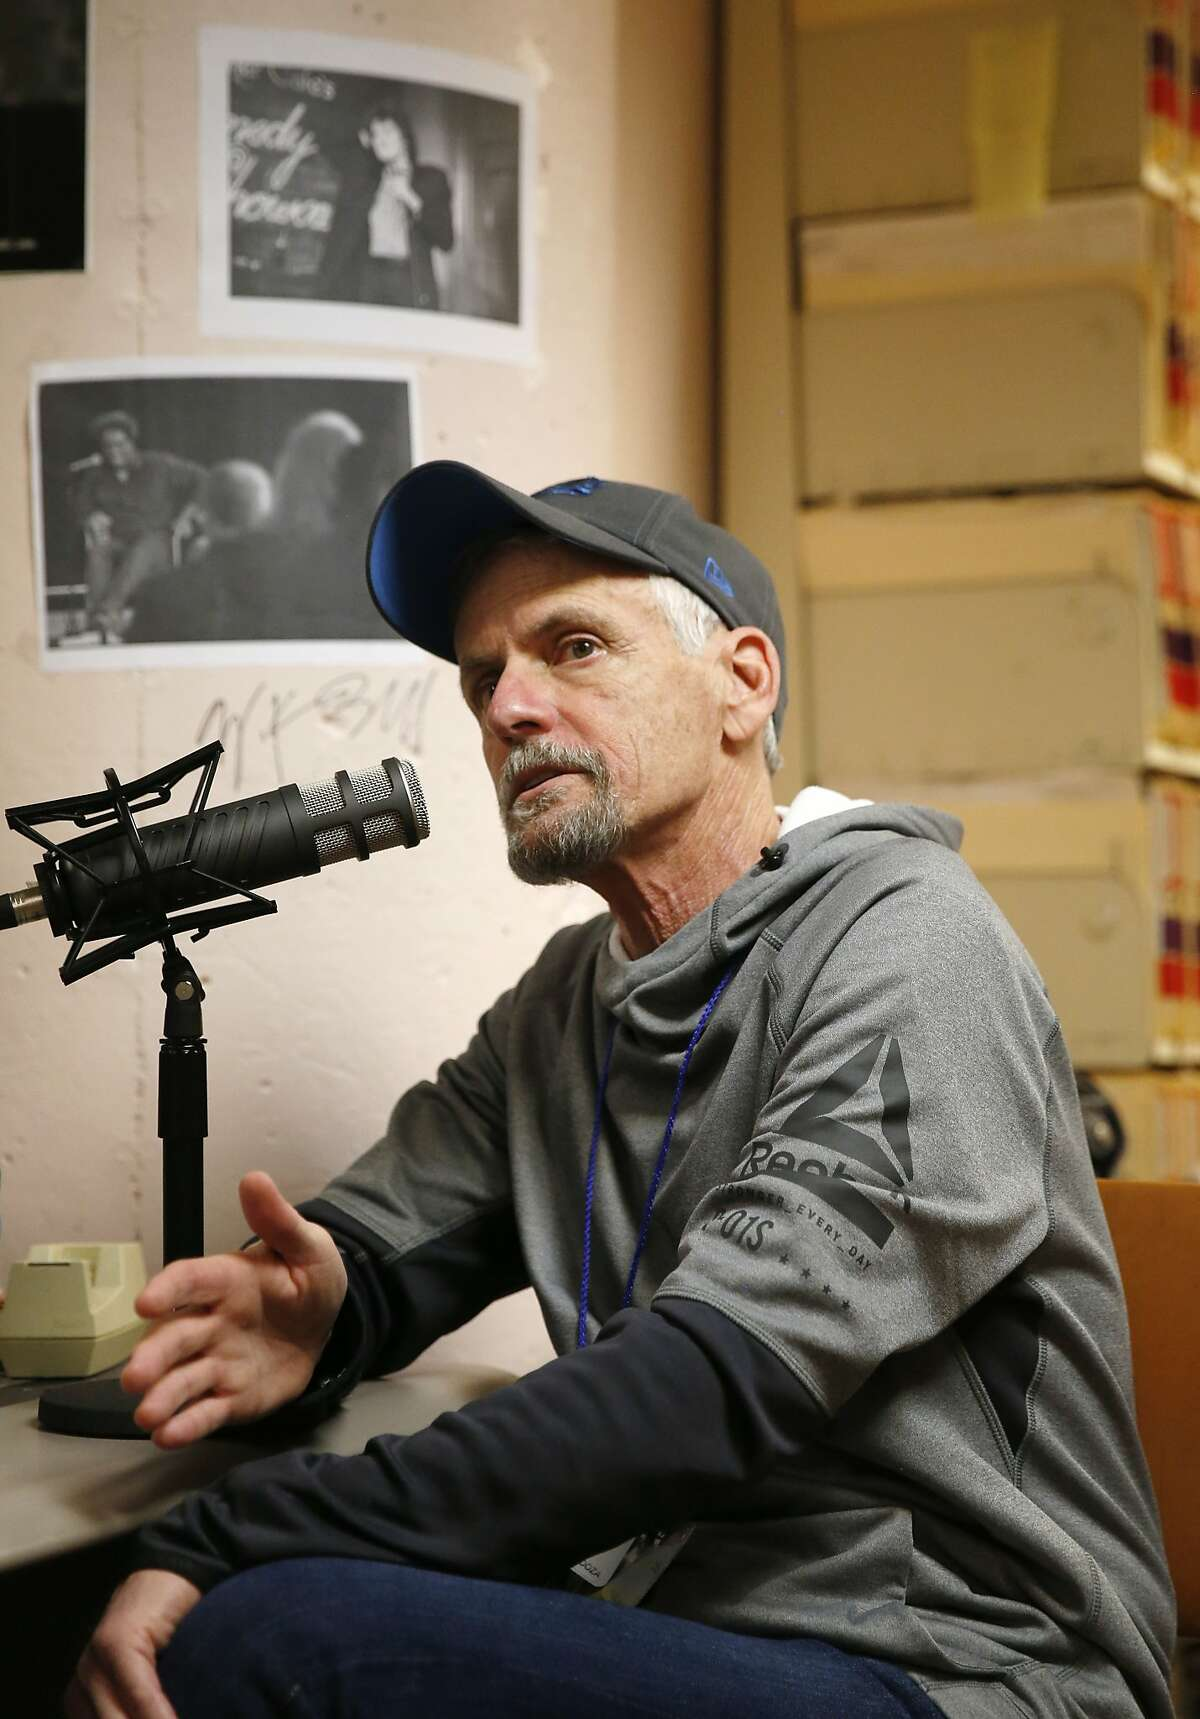 """Voice actor Rob Paulsen sits down to record """"The Big Event"""" podcast with Chronicle writers Peter Hartlaub and Mariecar Mendoza in the basement archive studio at the San Francisco Chronicle on Friday, Jan. 12, 2018 in San Francisco, Calif."""